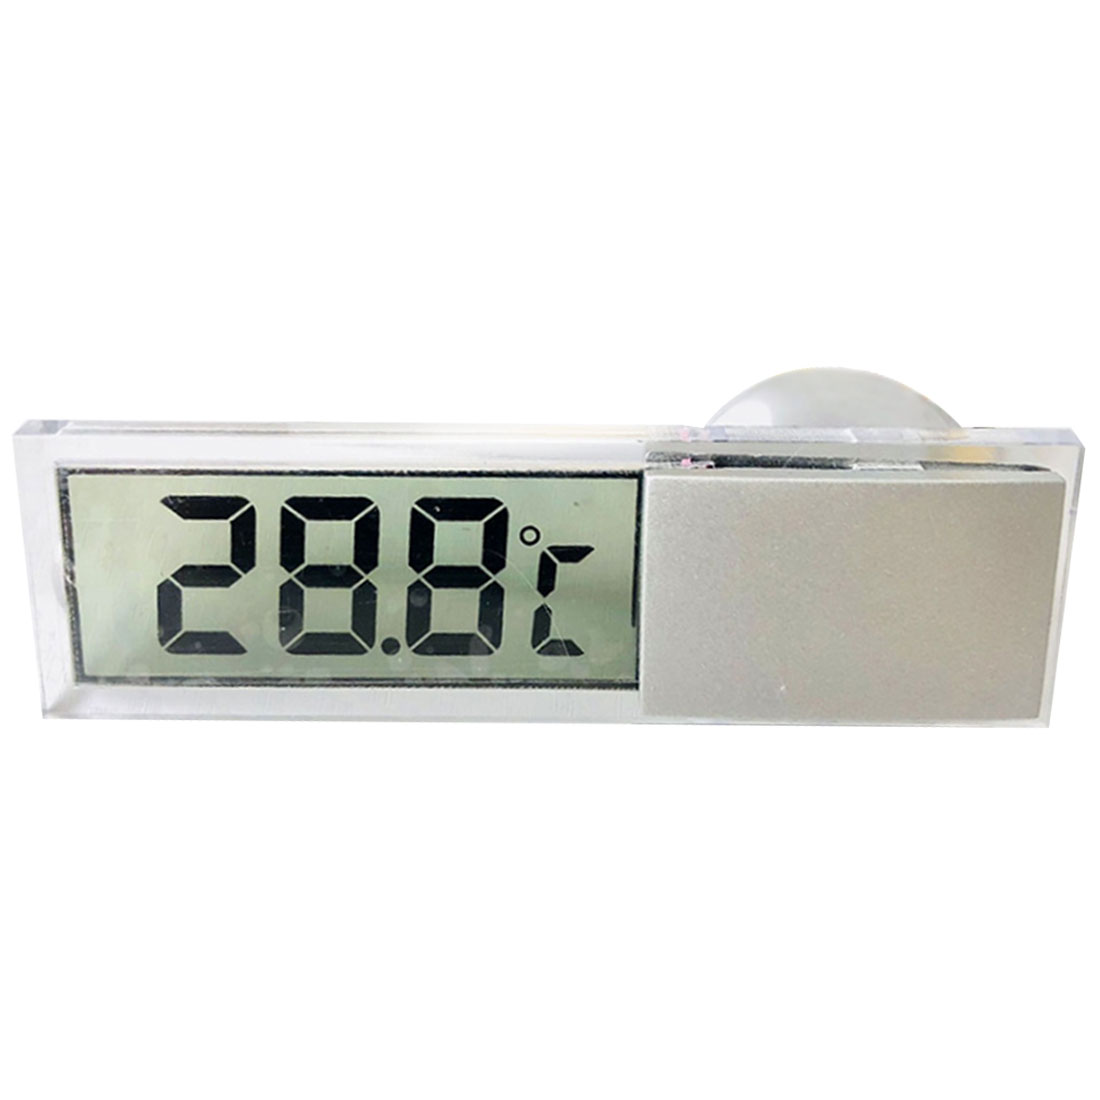 Weather Station LCD Digital Car Thermometer Thermostat Temperature Instruments Sensor Wall Type Meter -20-110